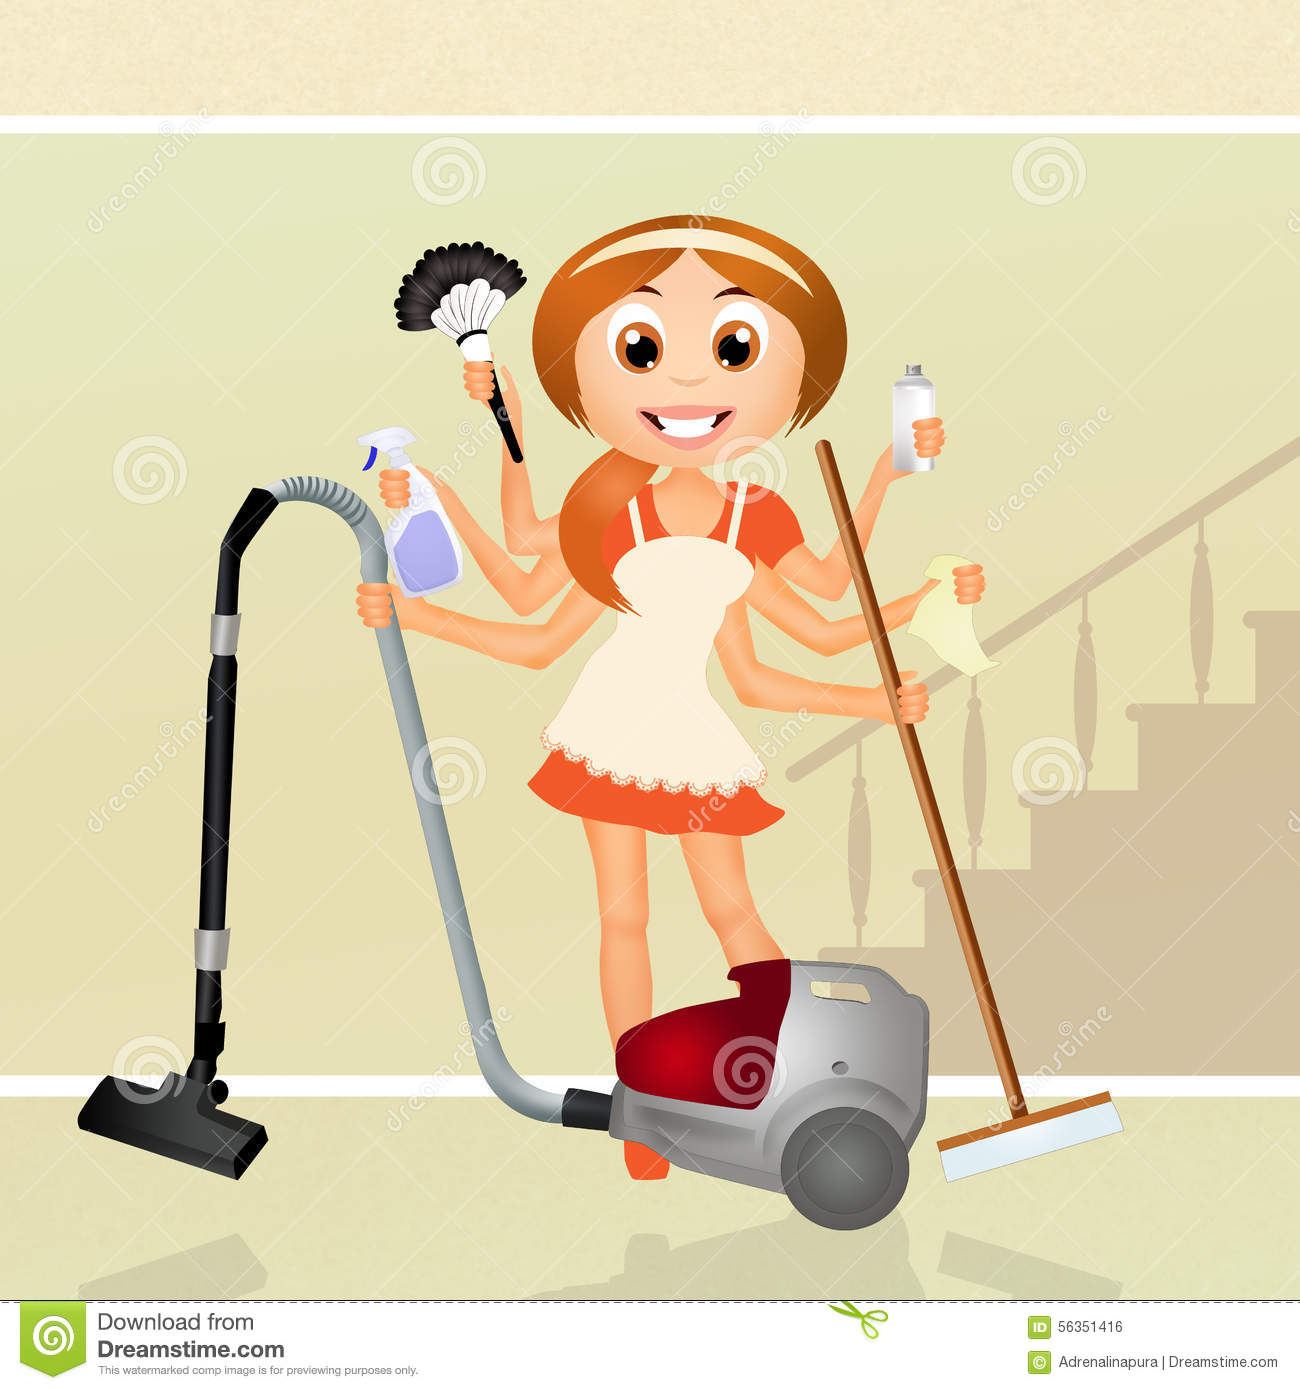 Woman Handyman Stock Illustration. Illustration Of